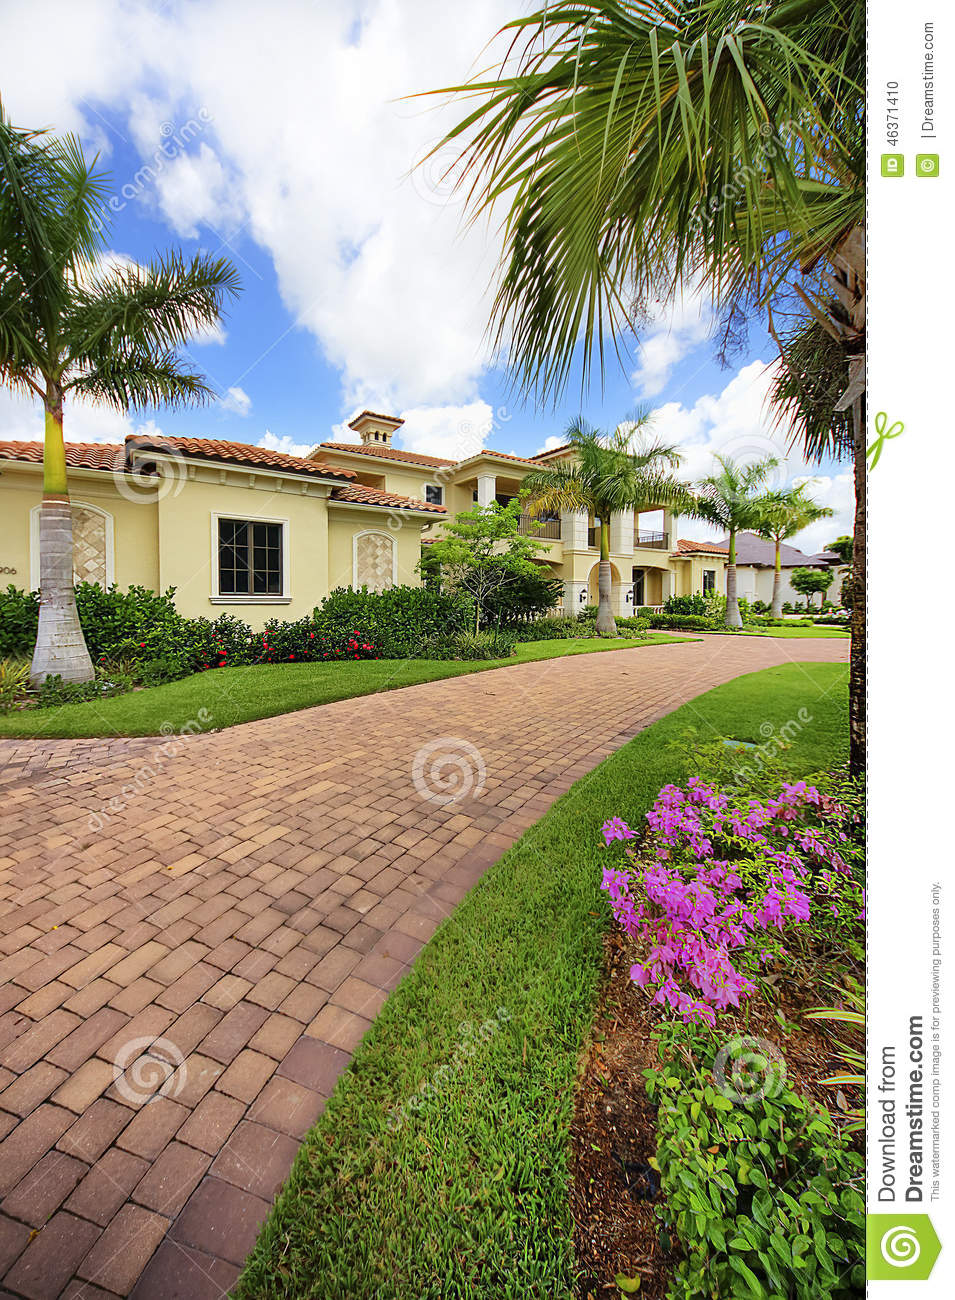 Florida Luxury Home With Pillars Stock Photo